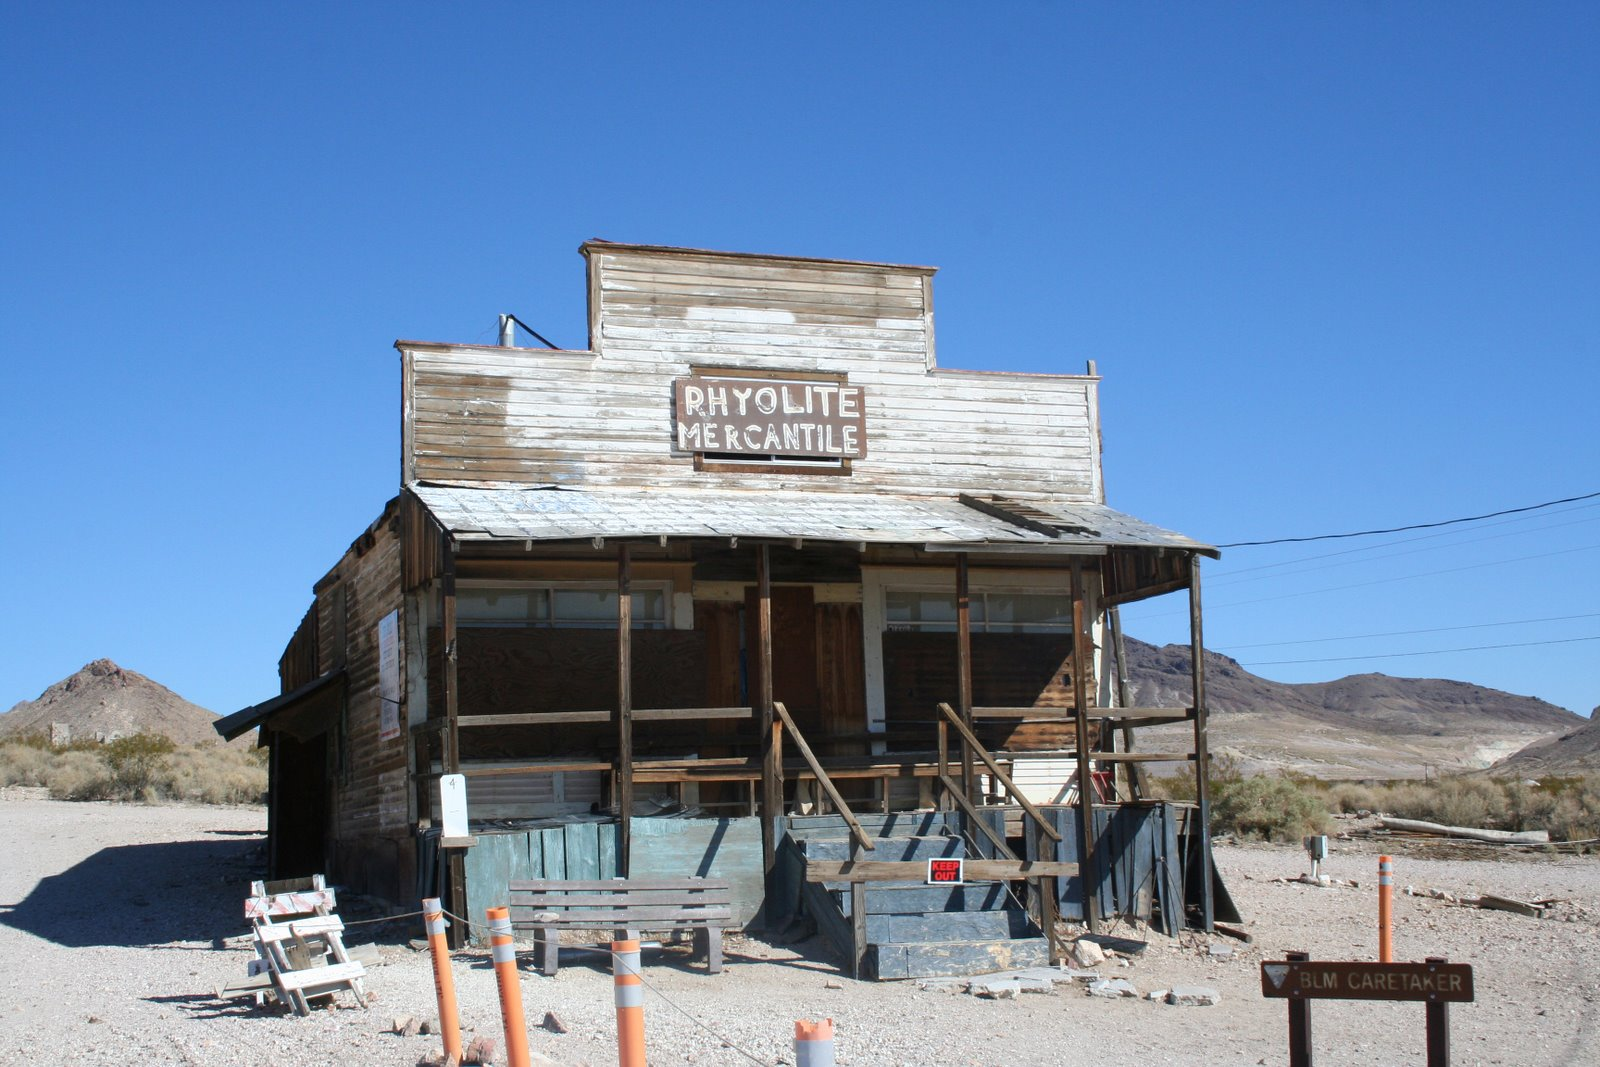 Ghost Town Of Rhyloite Nv